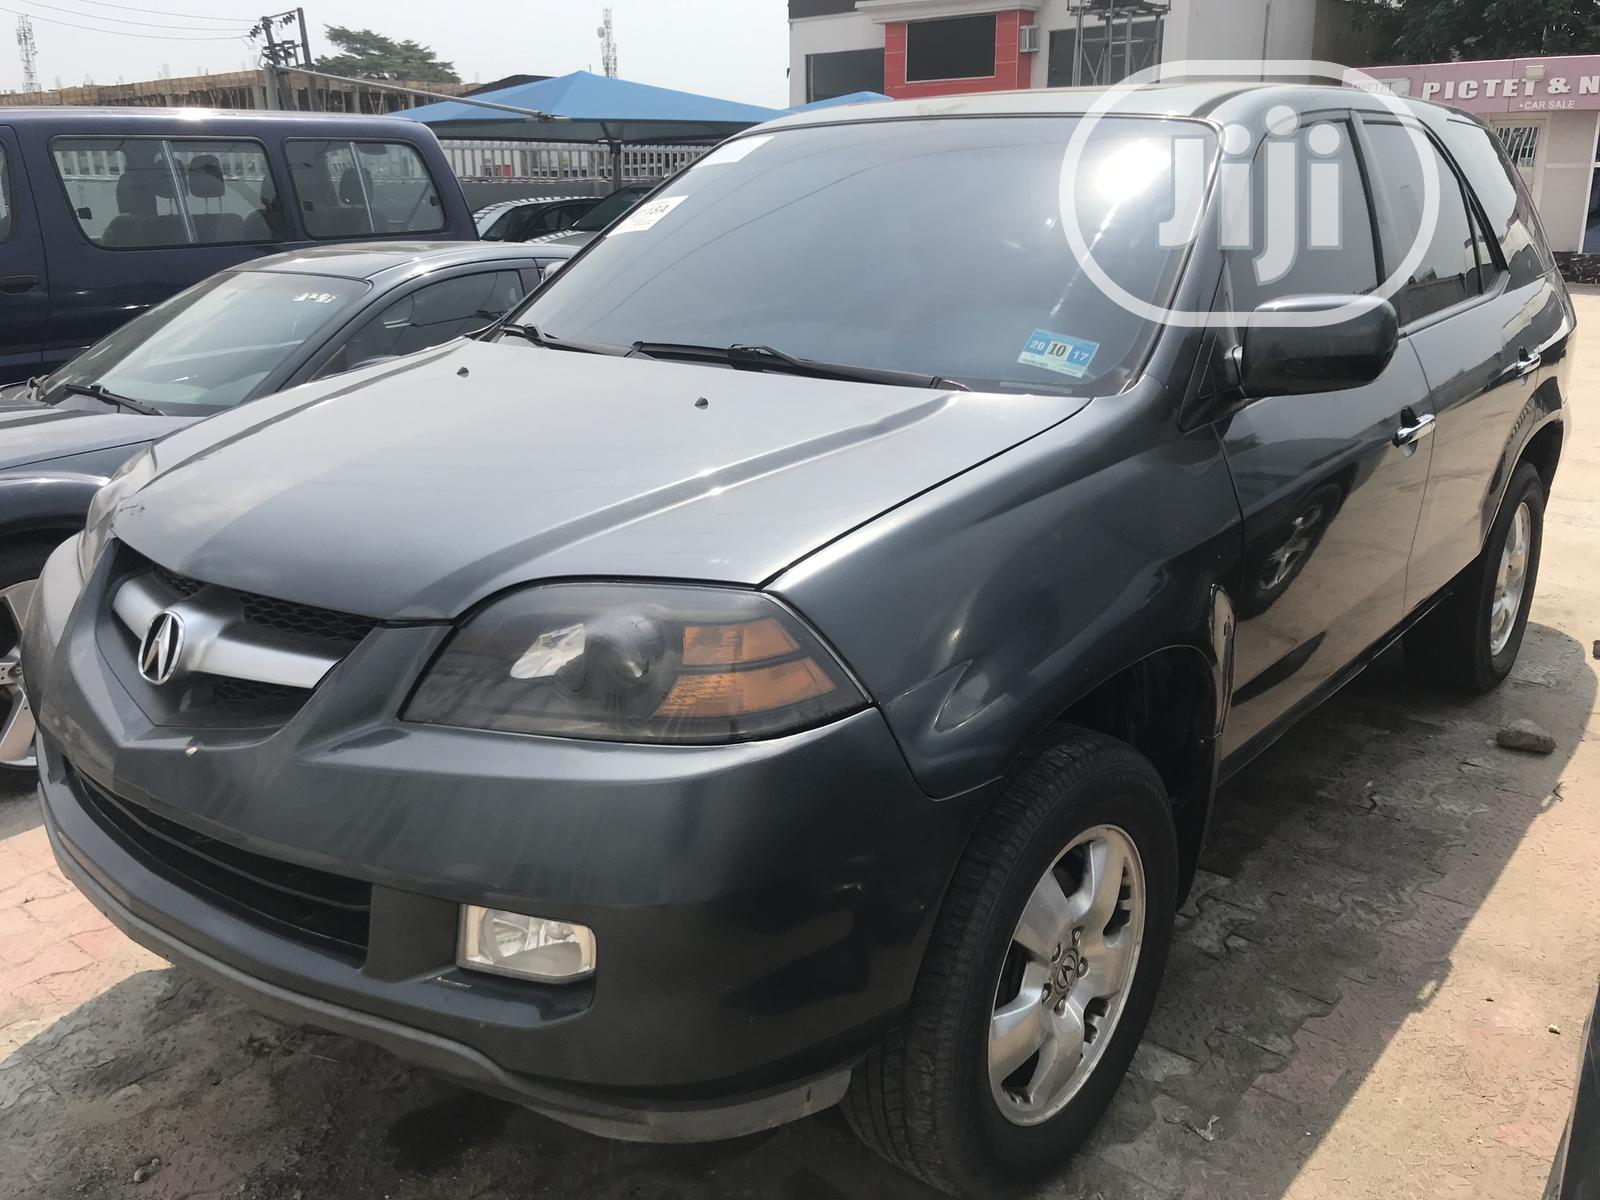 Archive: Acura MDX 2004 Touring Package Gray